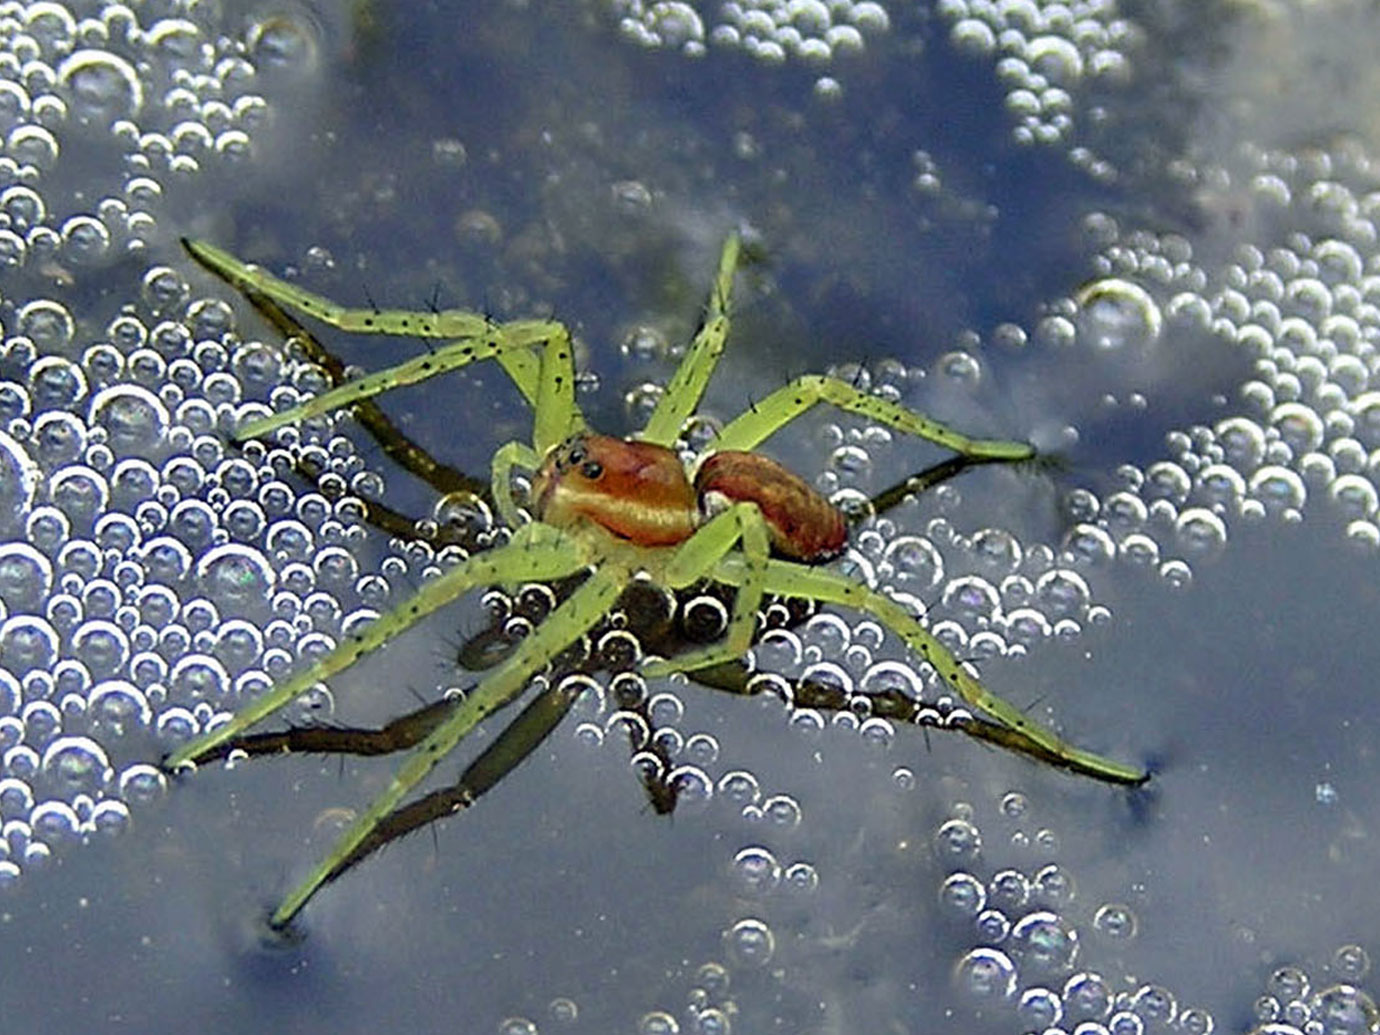 Dolomedes fimbriatus spiderling with green legs